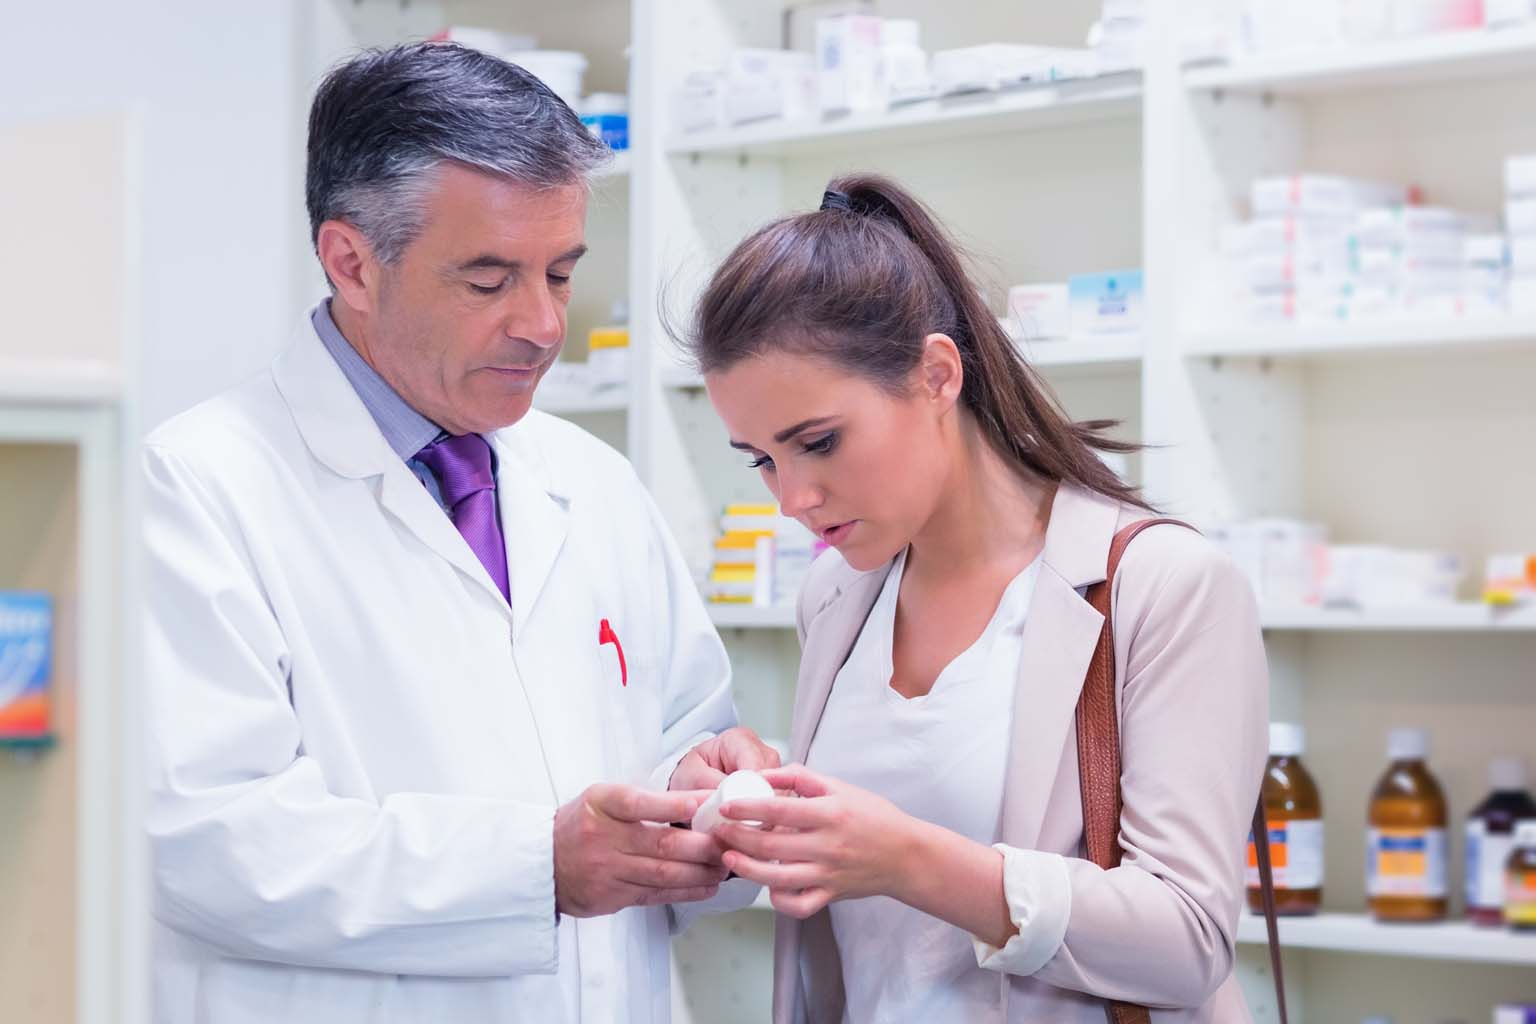 pharmacist in pharmacy talking to patient